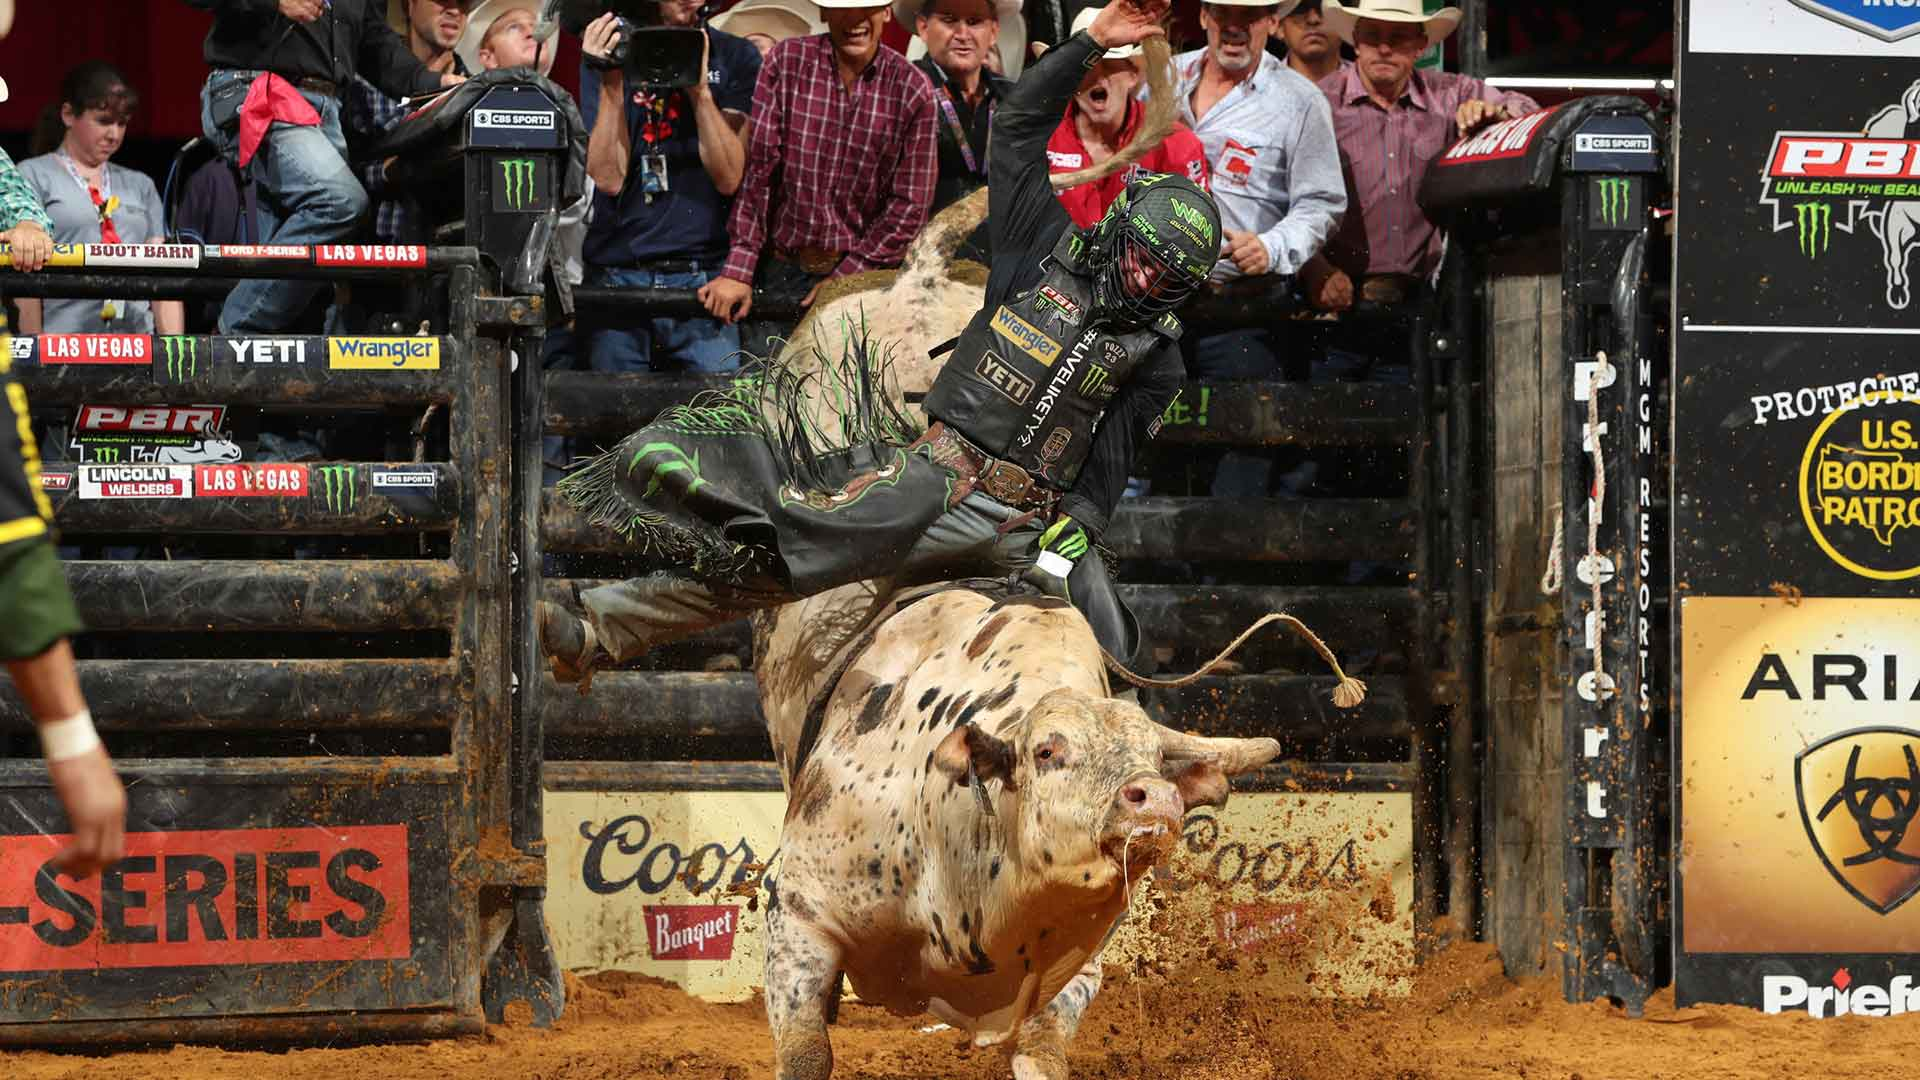 Outlaw ends historic night of 15/15 Bucking Battle action with gold buckle guts